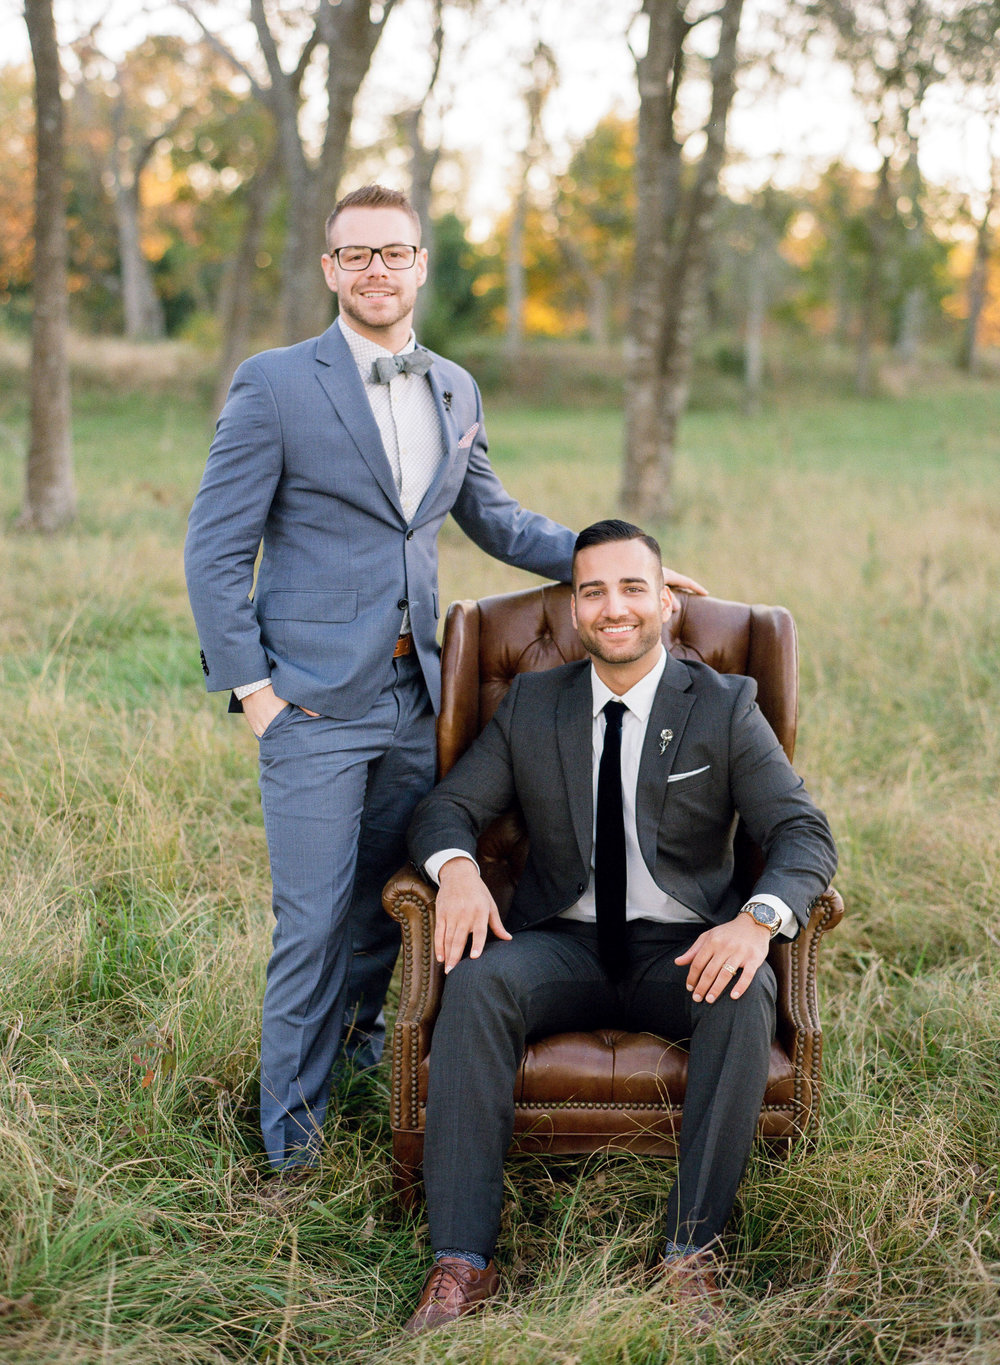 Houston-Texas-Same-Sex-LGBT-Wedding-Photographer-Burnett's-Board-Feature-Dana-Fernandez-Photography-Love-Wins-Film-7.jpg